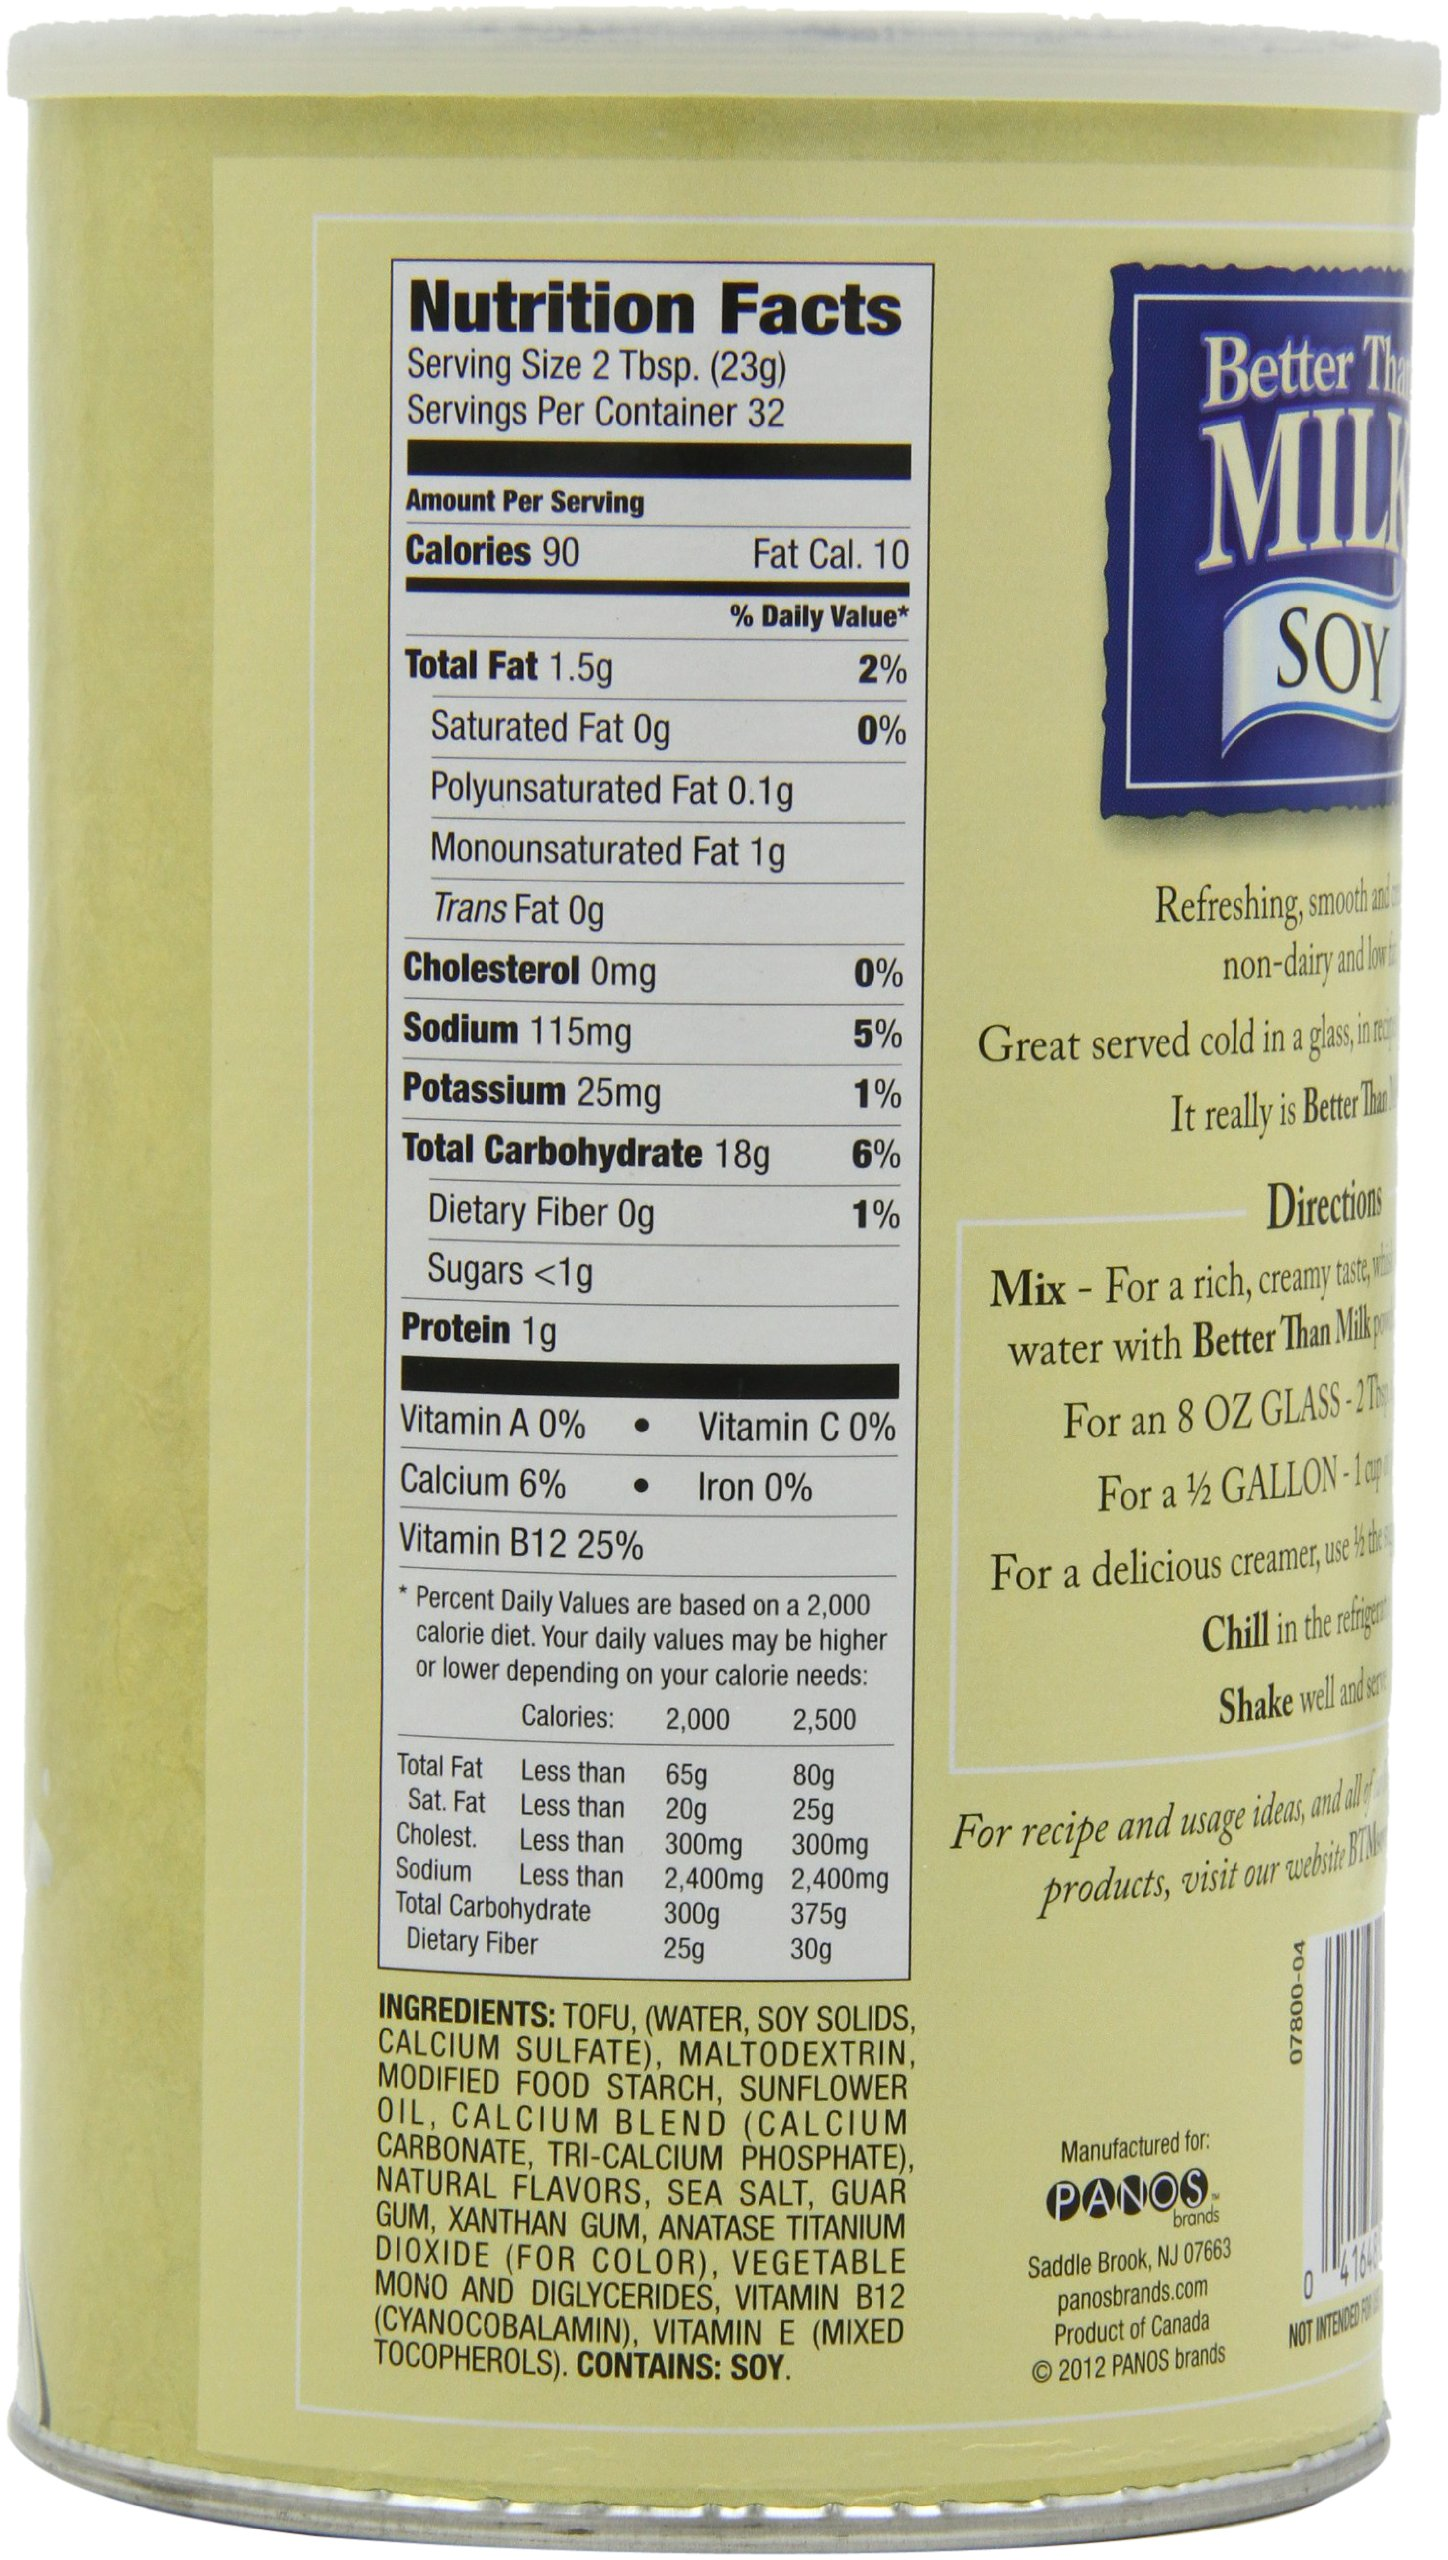 Better Than Milk Vegan Soy Powder, 25.9-Ounce Canisters (Pack of 2) by Better Than Milk (Image #2)